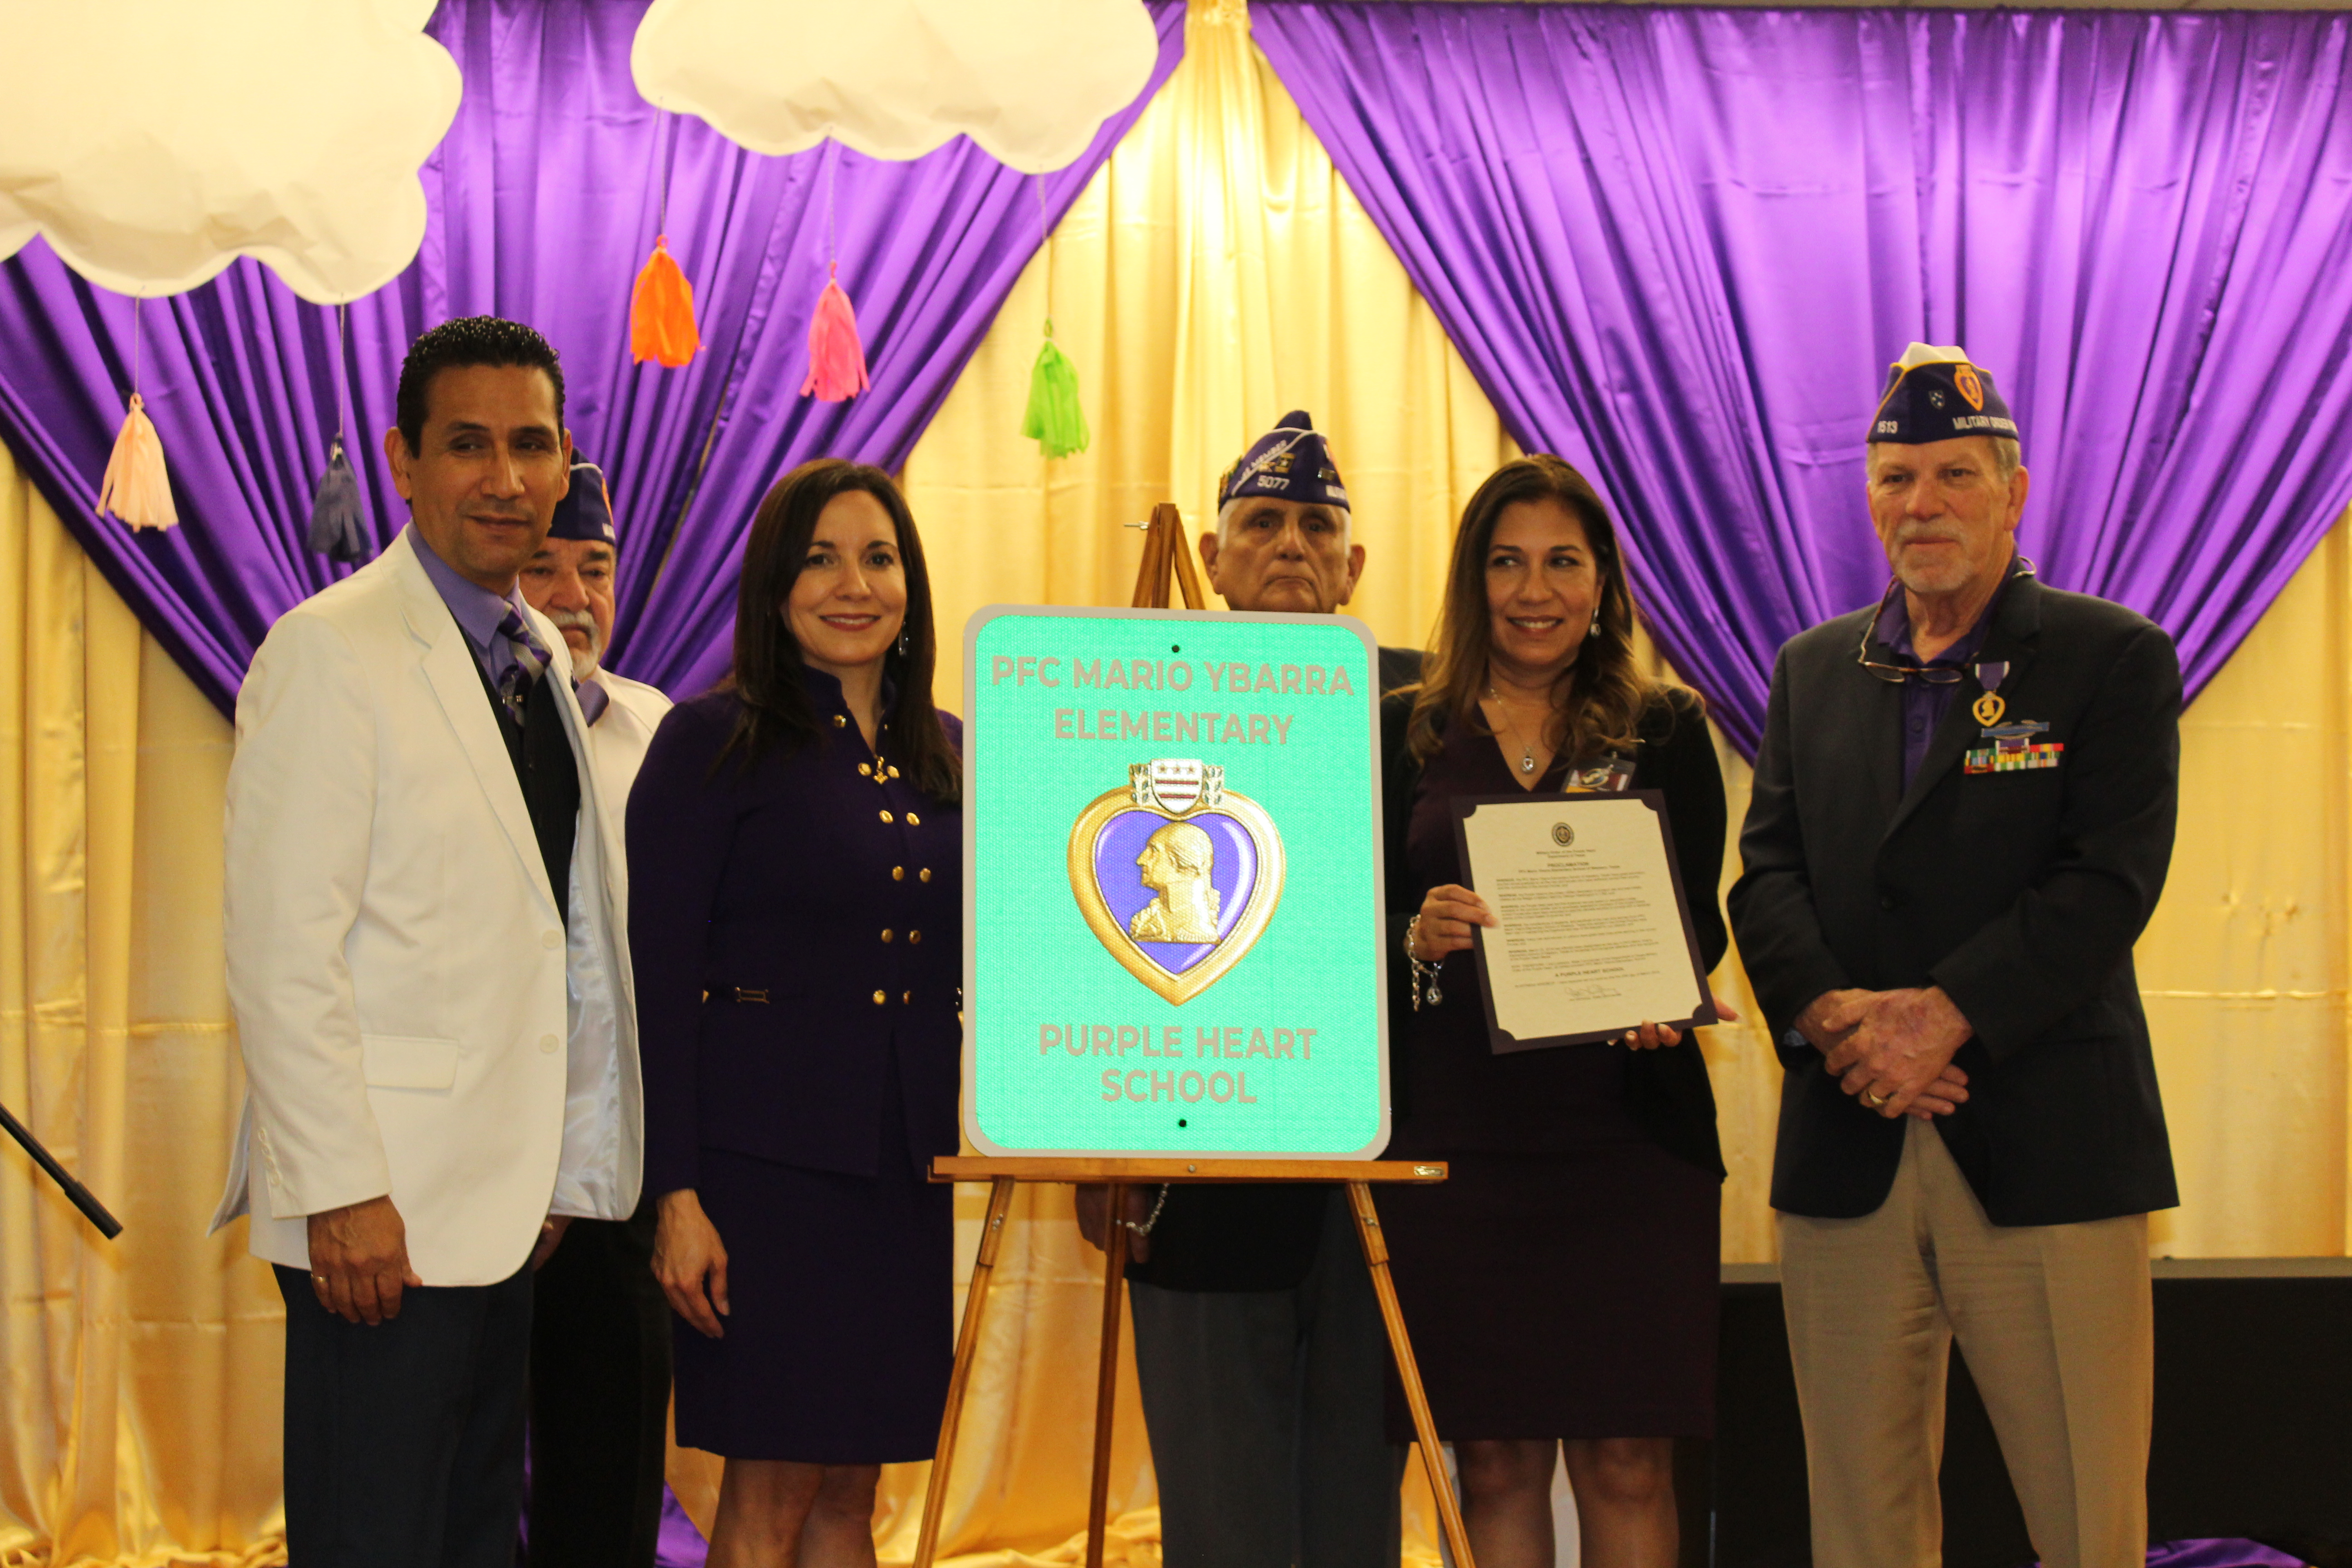 Purple Heart Distinction